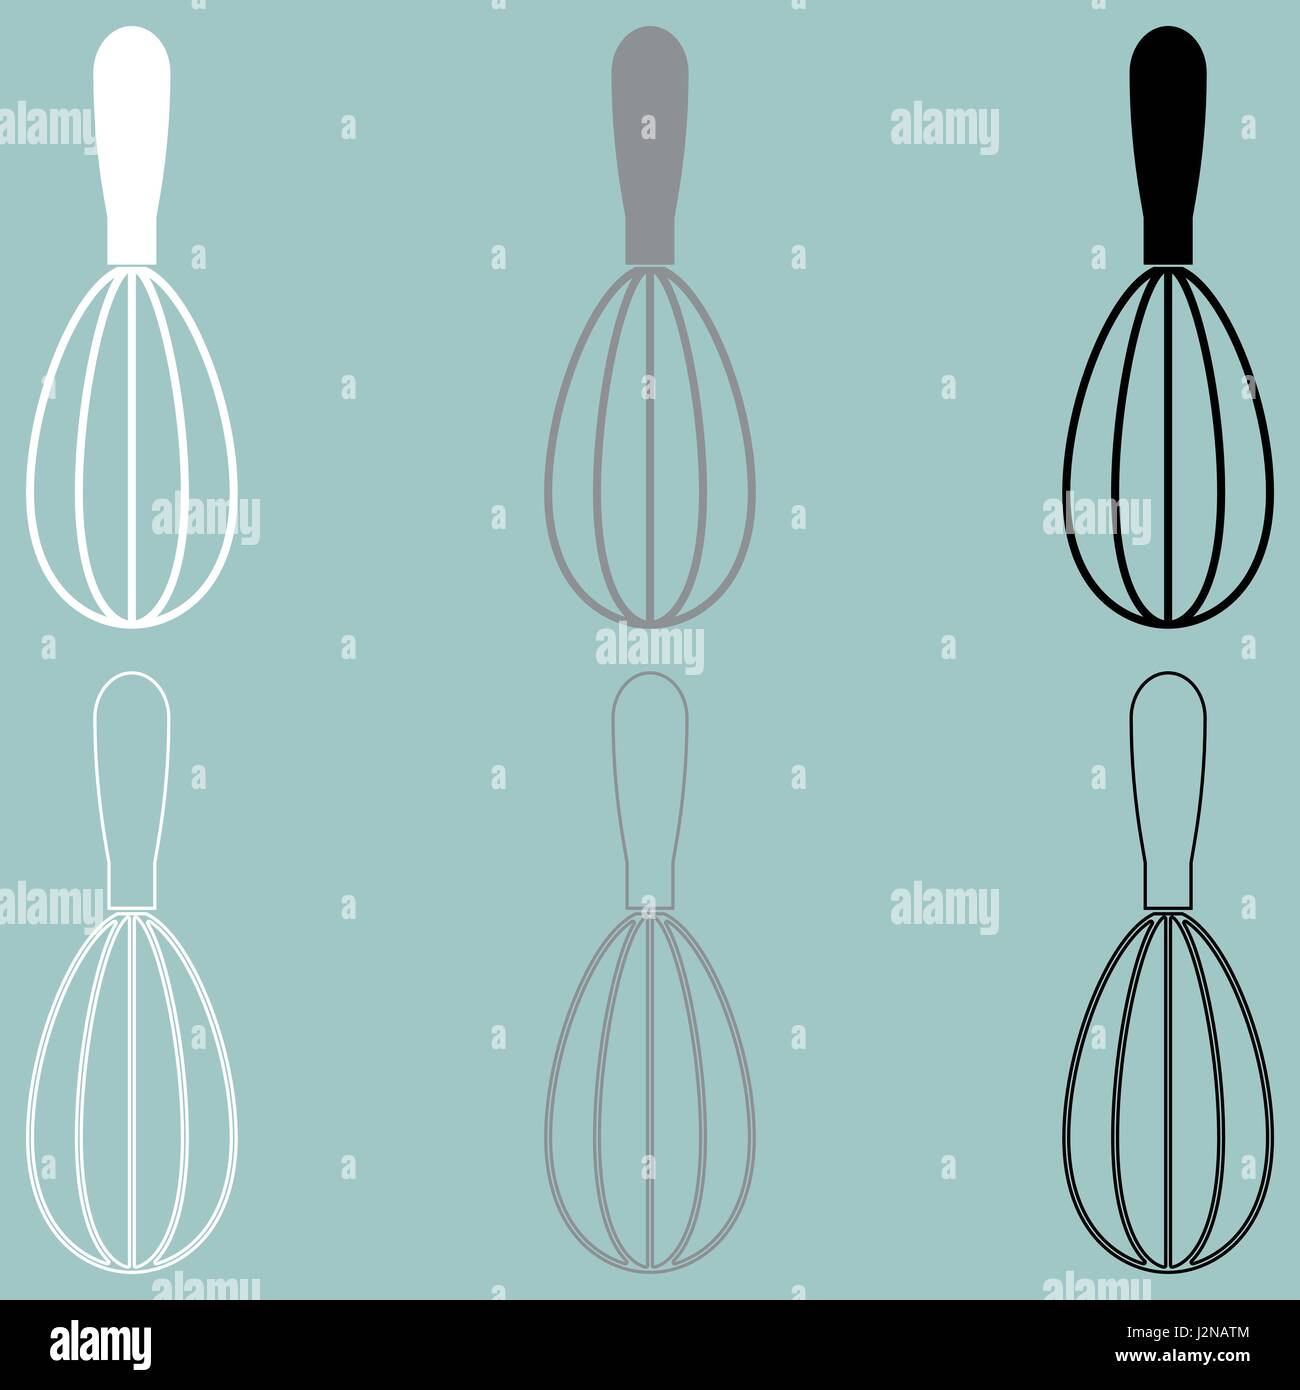 Whisking Stock Vector Images - Alamy